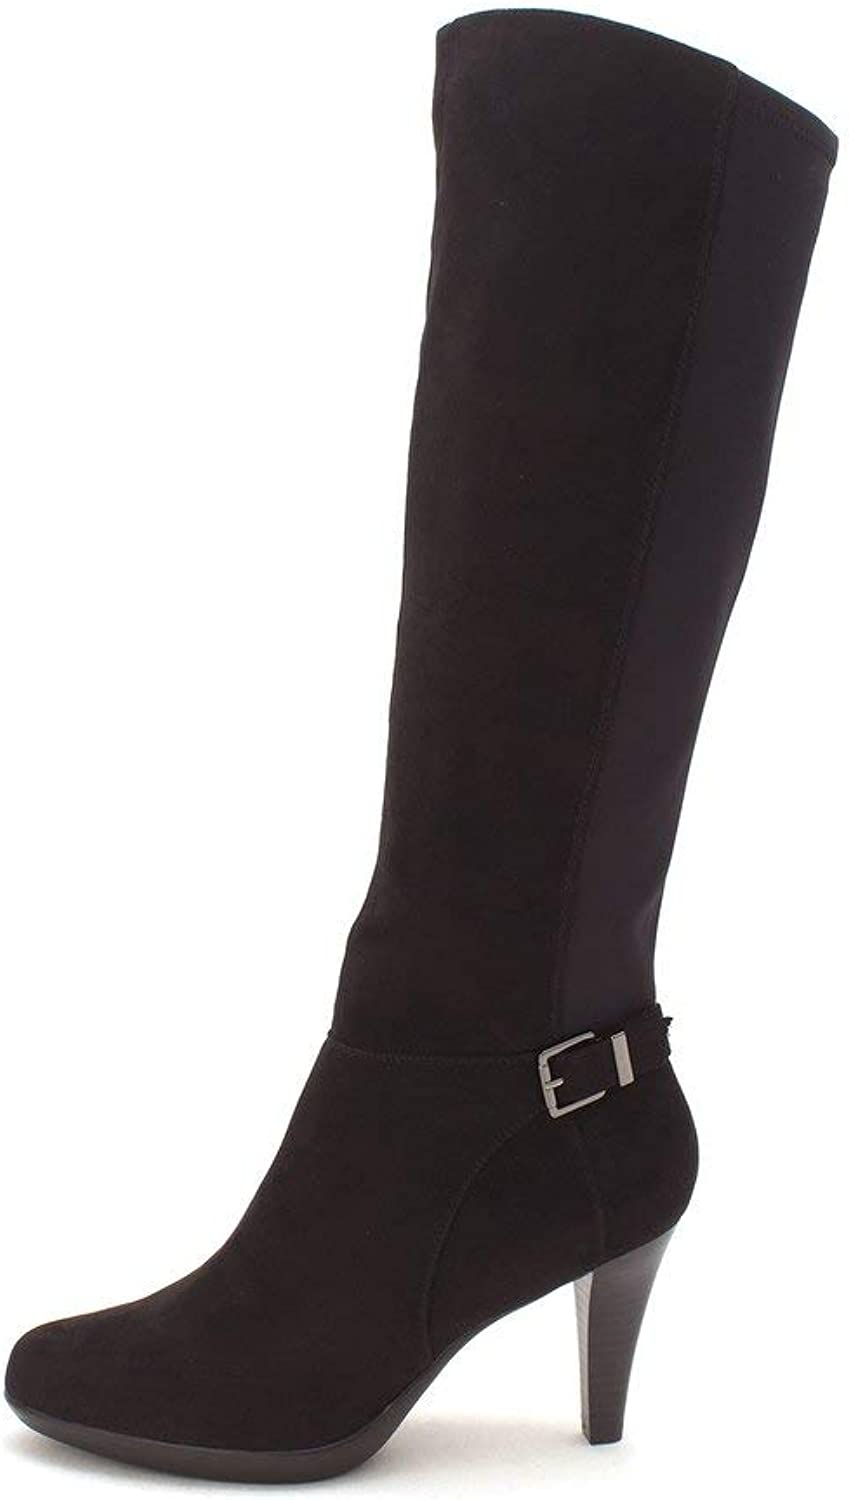 Alfani Womens Vennuss Almond Toe Knee High Fashion Boots